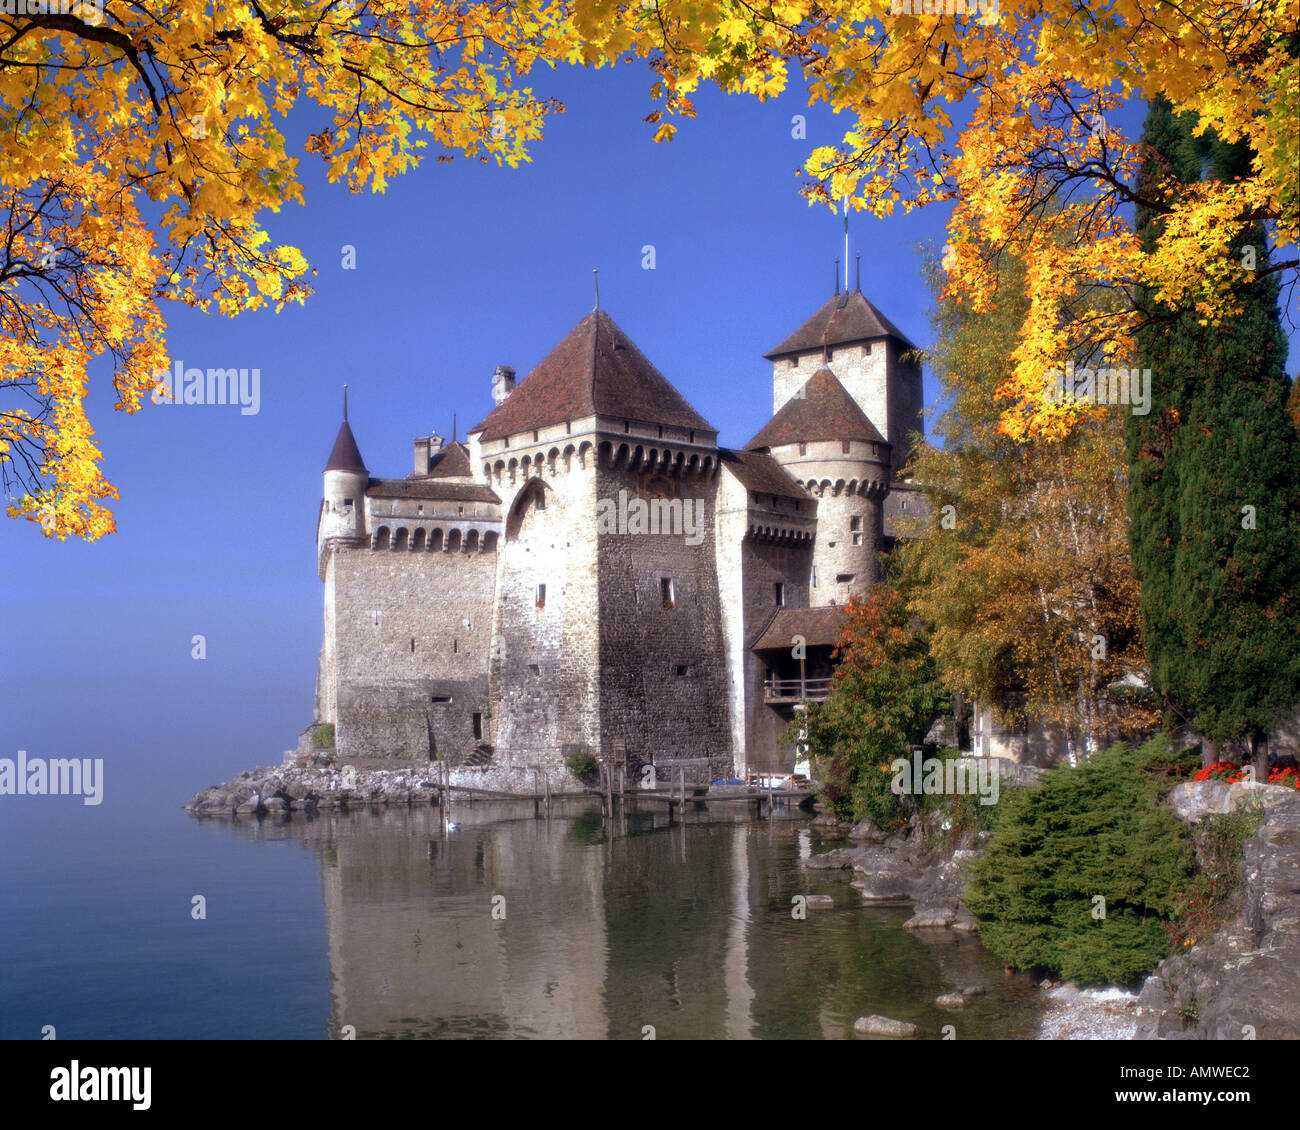 CH - VAUD: Chateau de Chillon on Lake Geneva - Stock Image